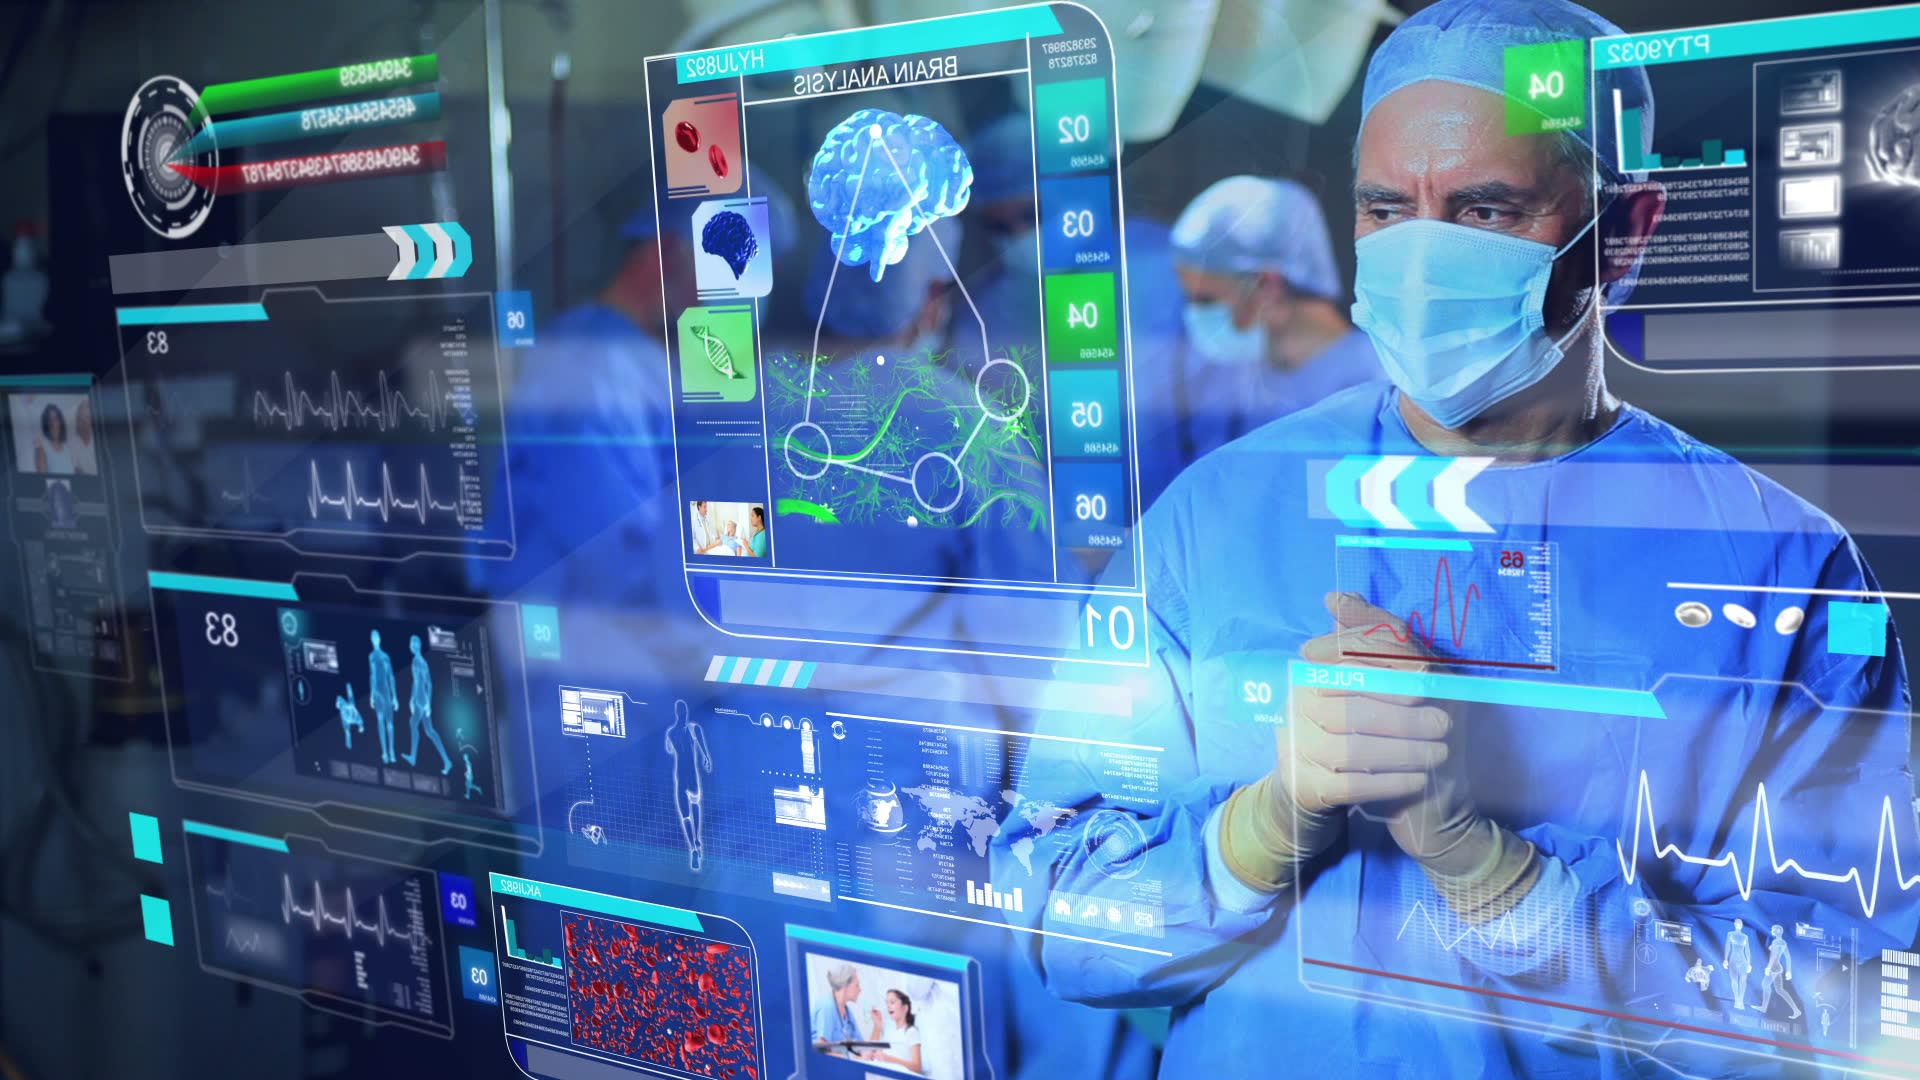 LEADING THE HEALTHCARE TRANSFORMATION